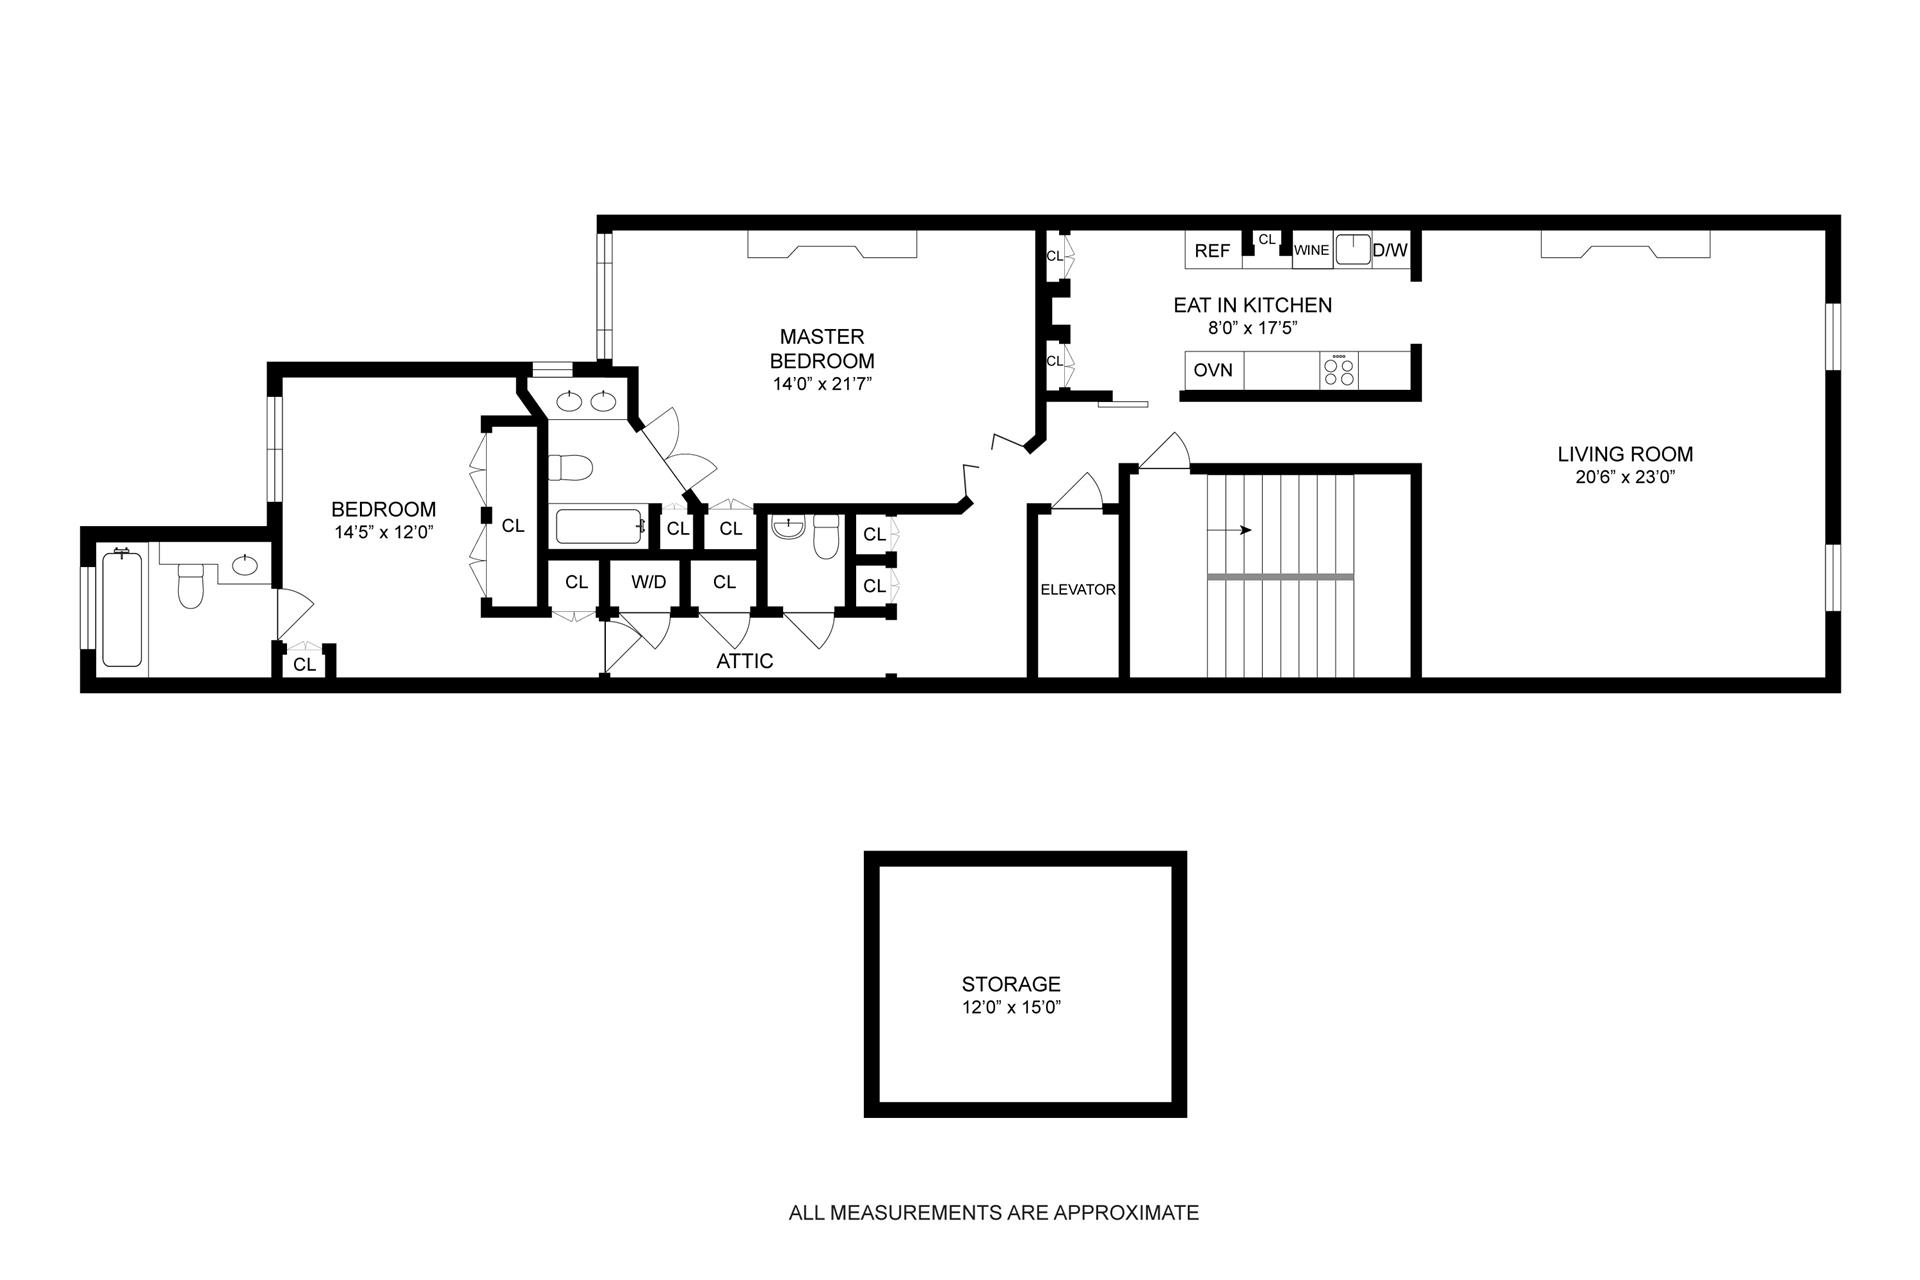 Floor plan of 48 West 86th St, 2 - Upper West Side, New York